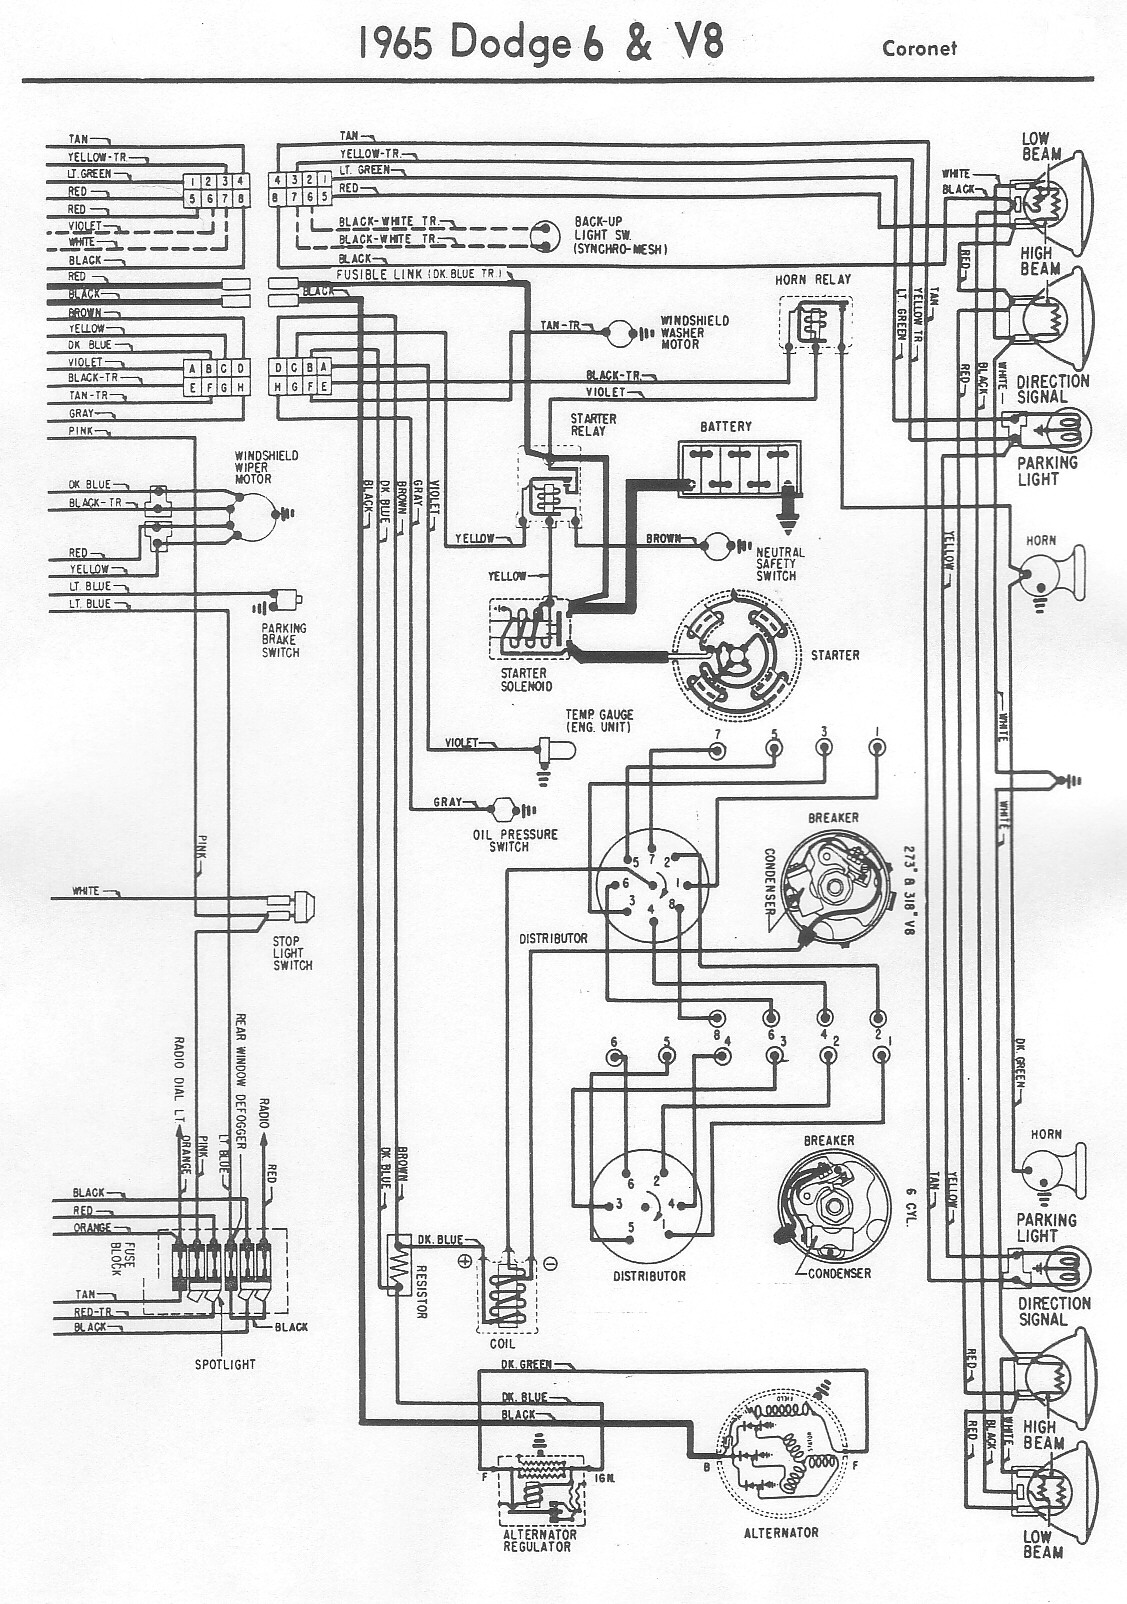 1963 plymouth wiring diagram wiring library 1963 cadillac wiring diagram 1963 plymouth wiring diagram [ 1127 x 1604 Pixel ]